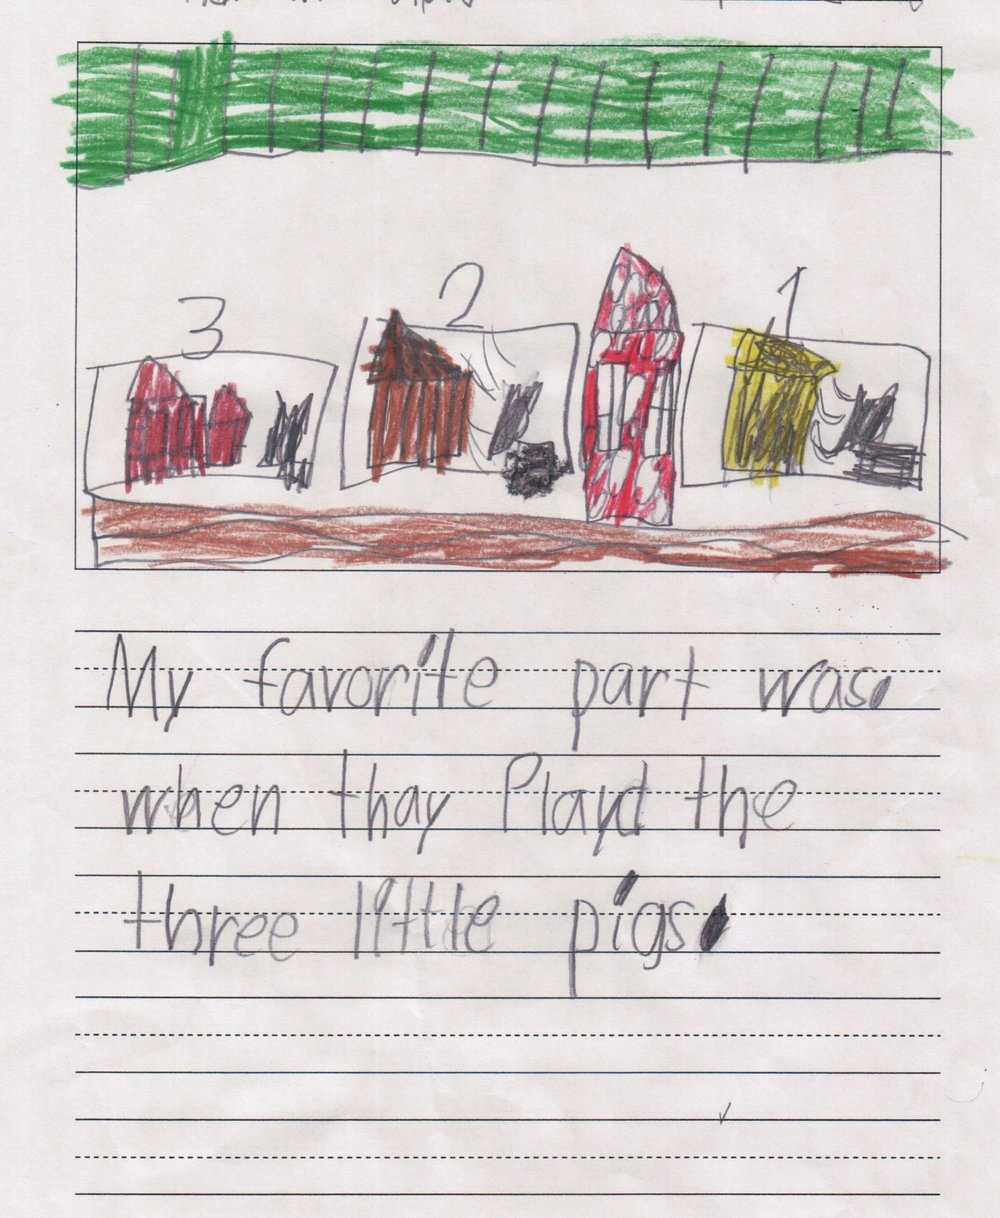 """My favorite part was when they played the three little pigs."" - A student from Scarborough Elementary/Houston ISD."